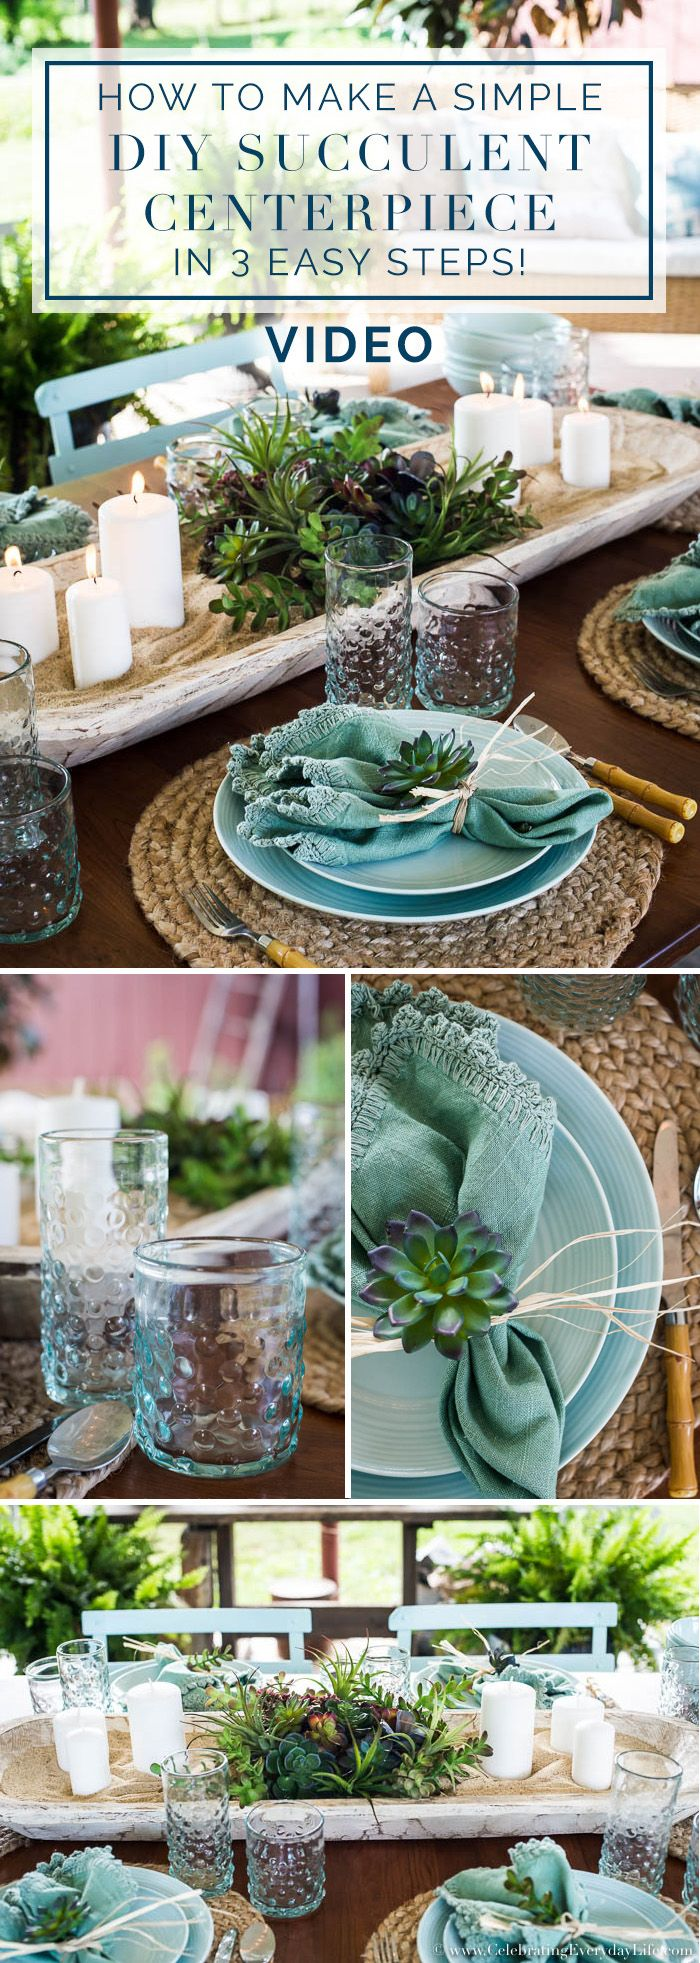 How To Make A Simple DIY Succulent Centerpiece In 3 Easy Steps video tutorial. I'll show you how to make a magazine worthy Succulent centerpiece that looks gorgeous but is super easy! It's an easy summer entertaining idea at its best! via @jencarrollva